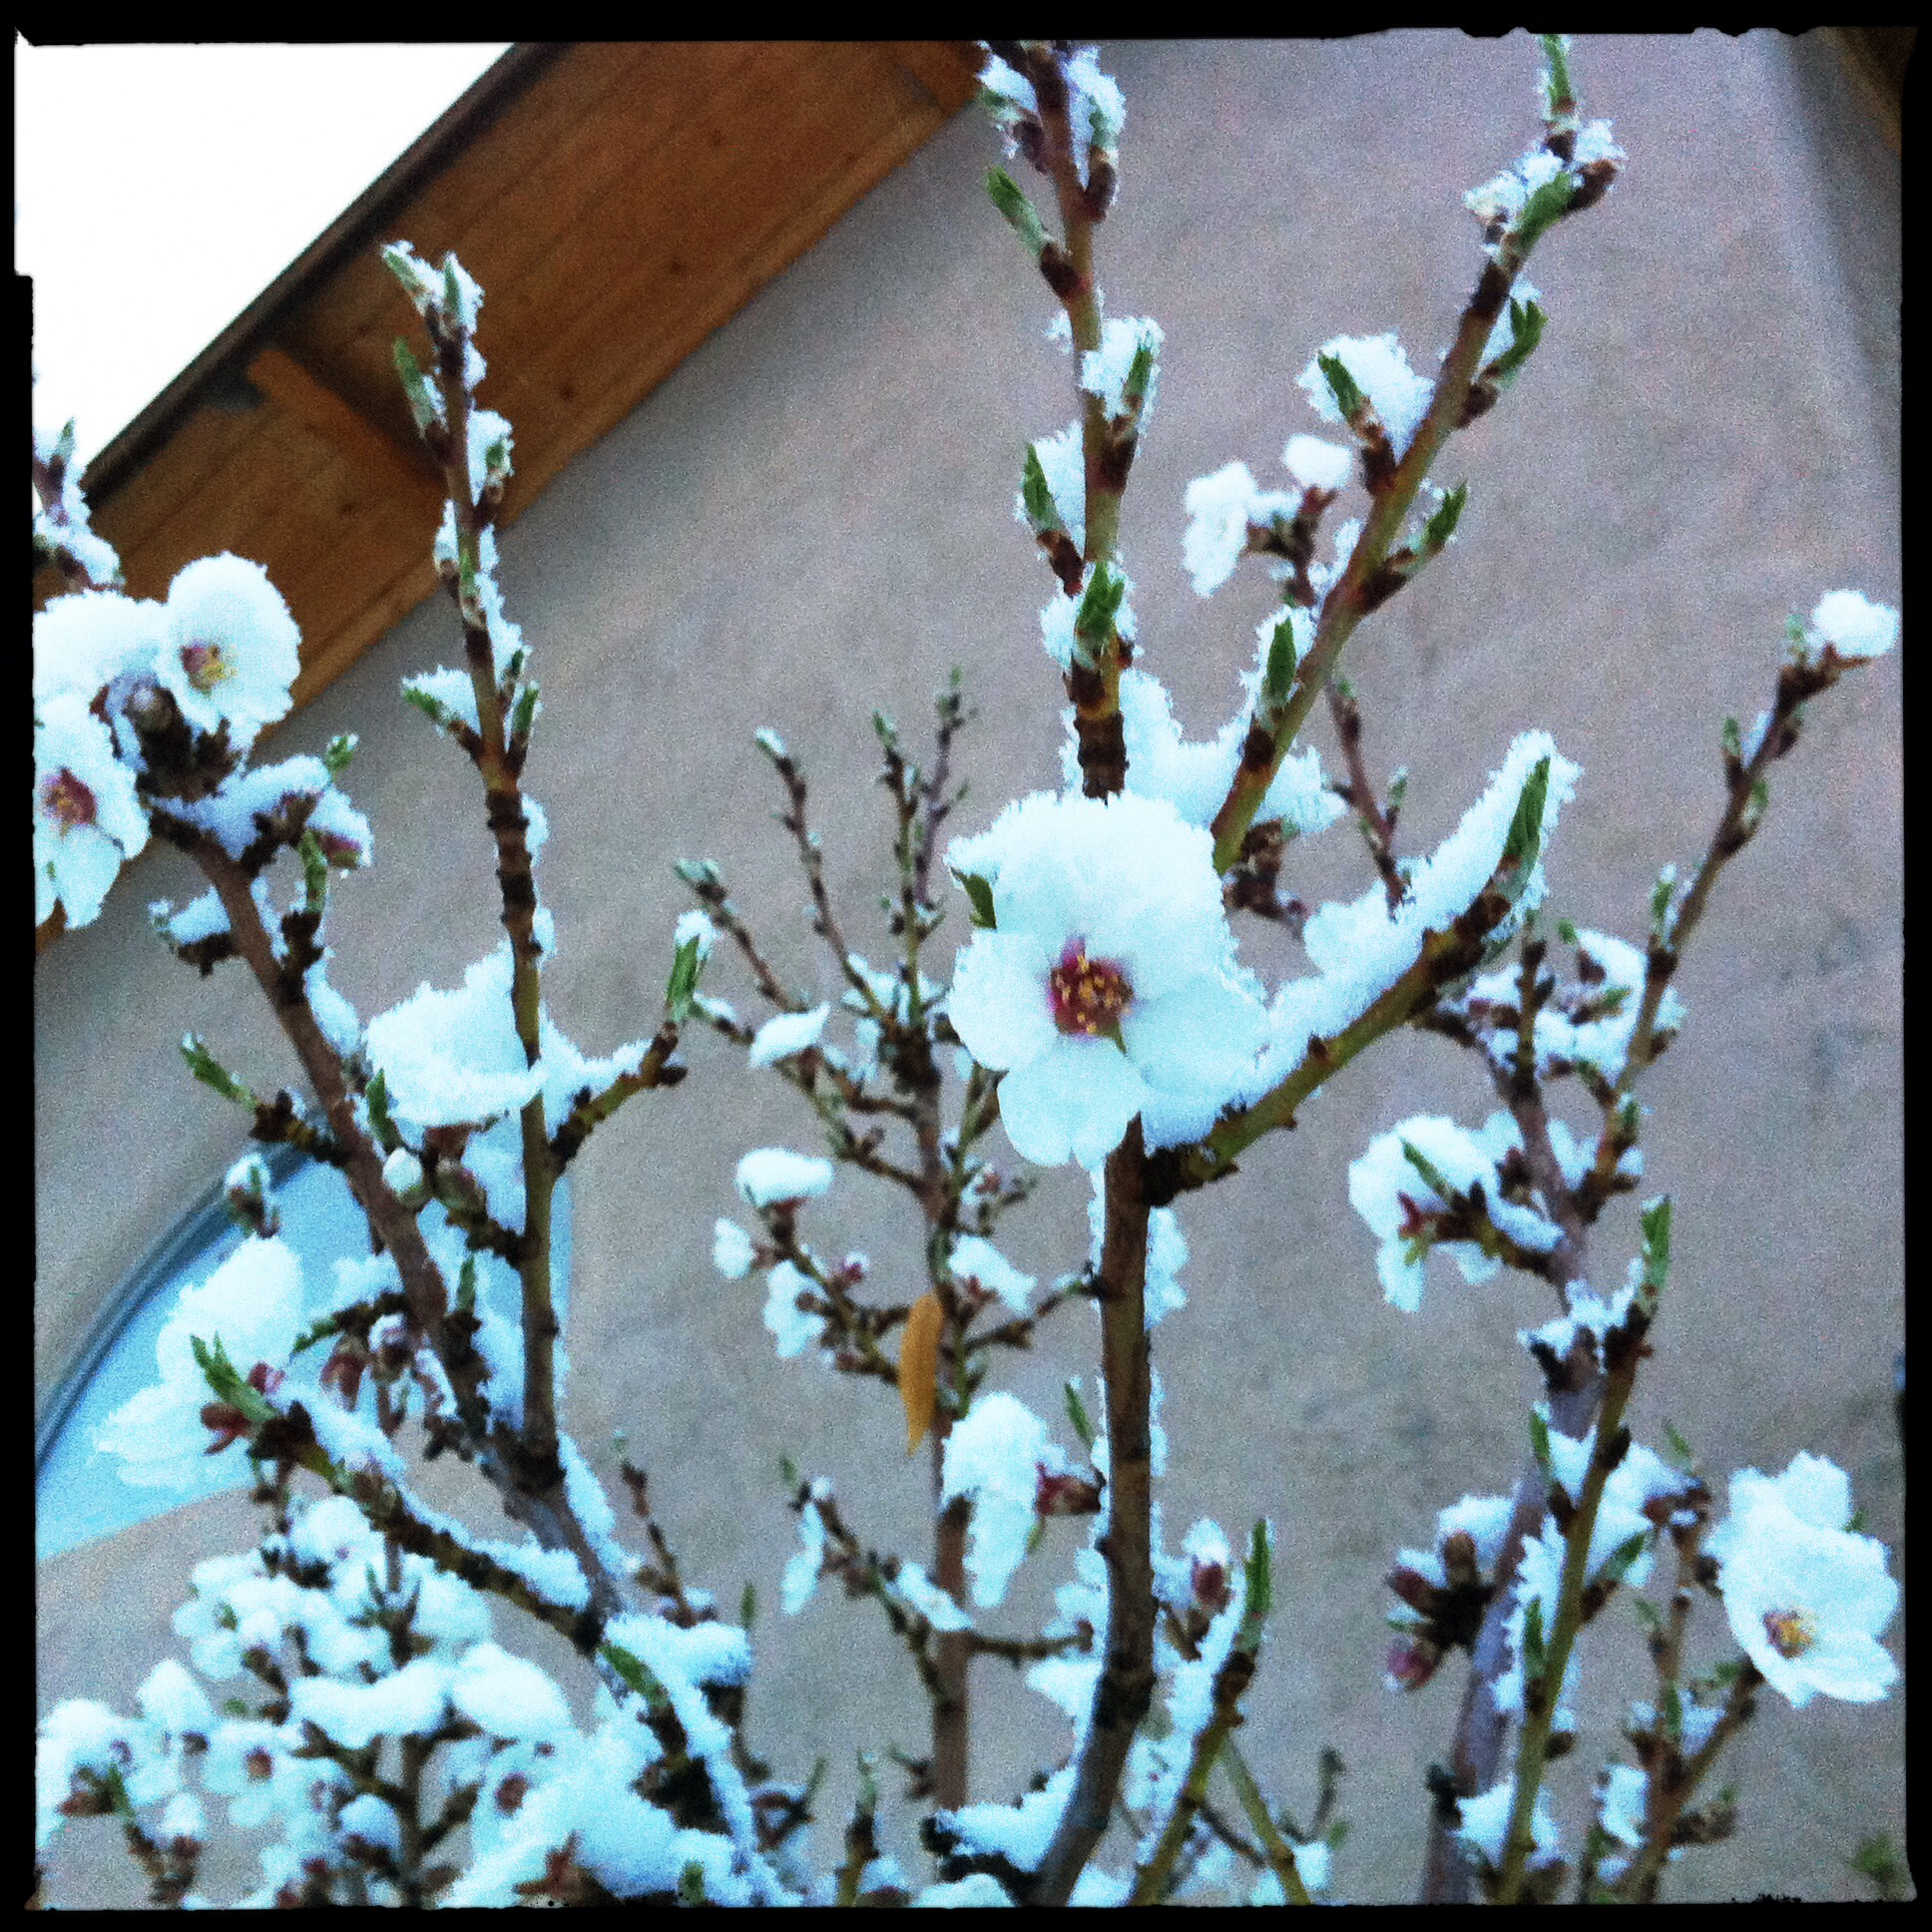 The almond blossoms appear to have been protected from the freeze.